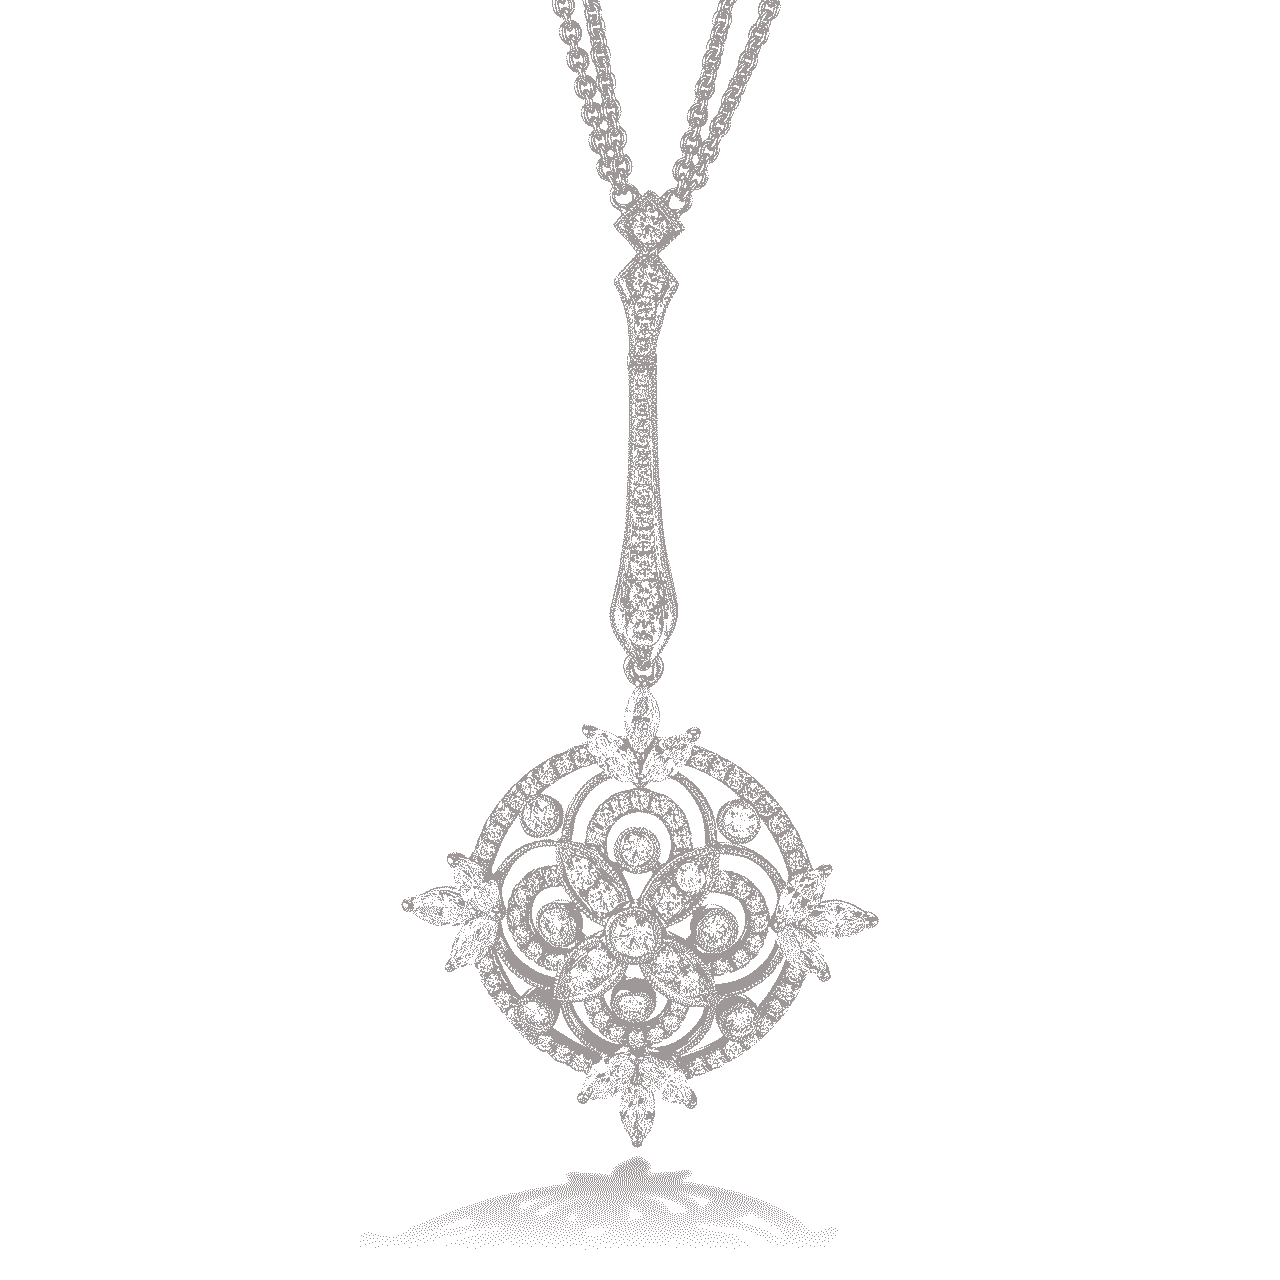 Heritage 18K Gold And Diamond Sautoir Necklace – Hamilton For Most Current Diamond Sautoir Necklaces In Yellow Gold (Gallery 21 of 25)